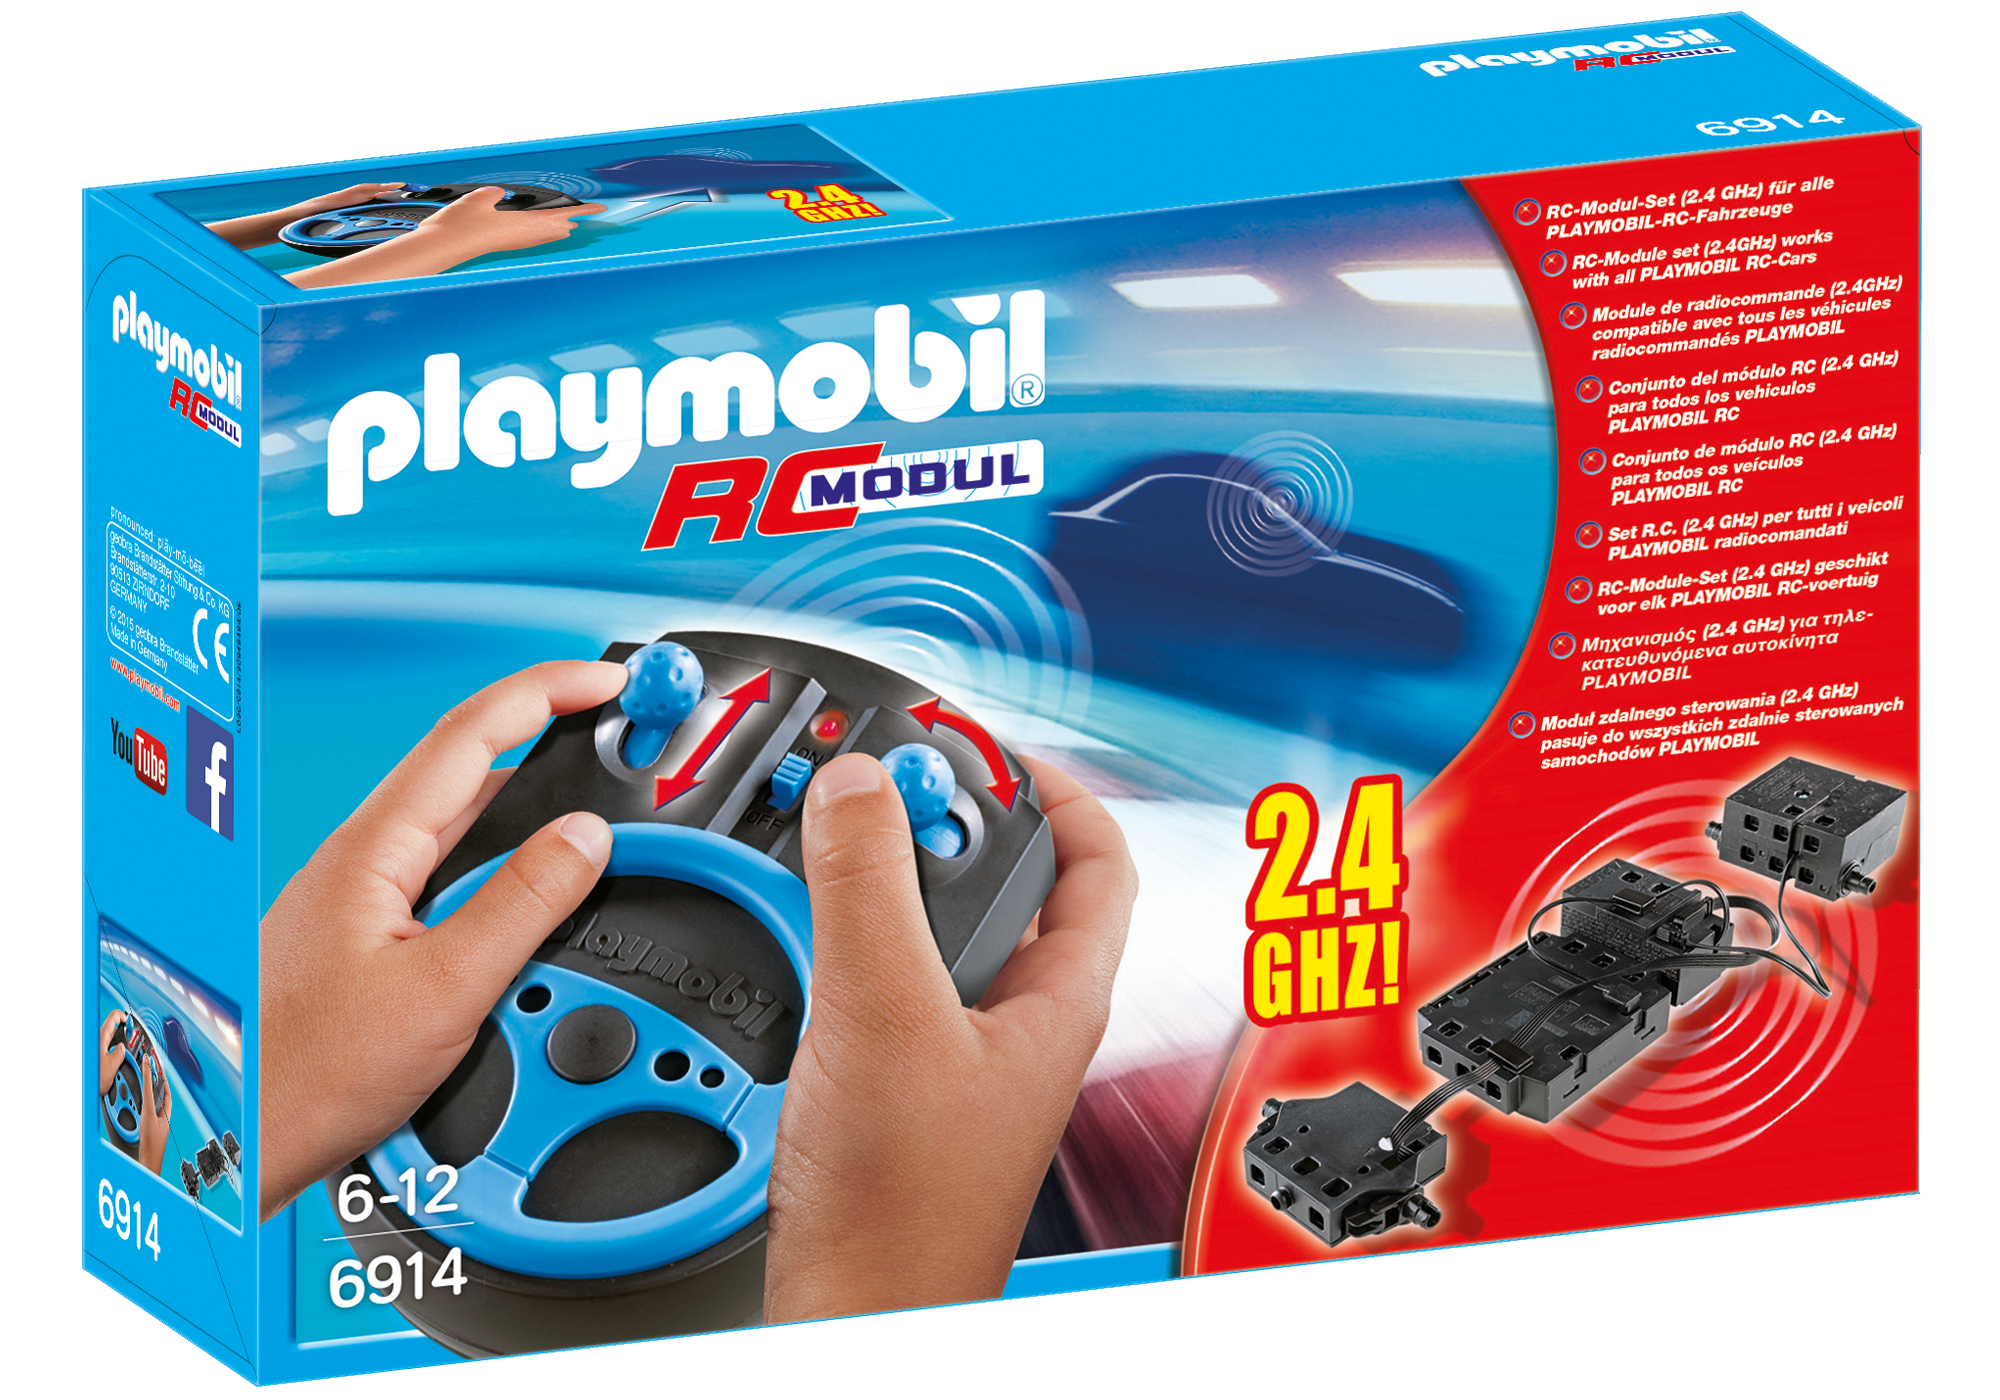 http://media.playmobil.com/i/playmobil/6914_product_box_front/RC-Modul-Set 2,4 GHz